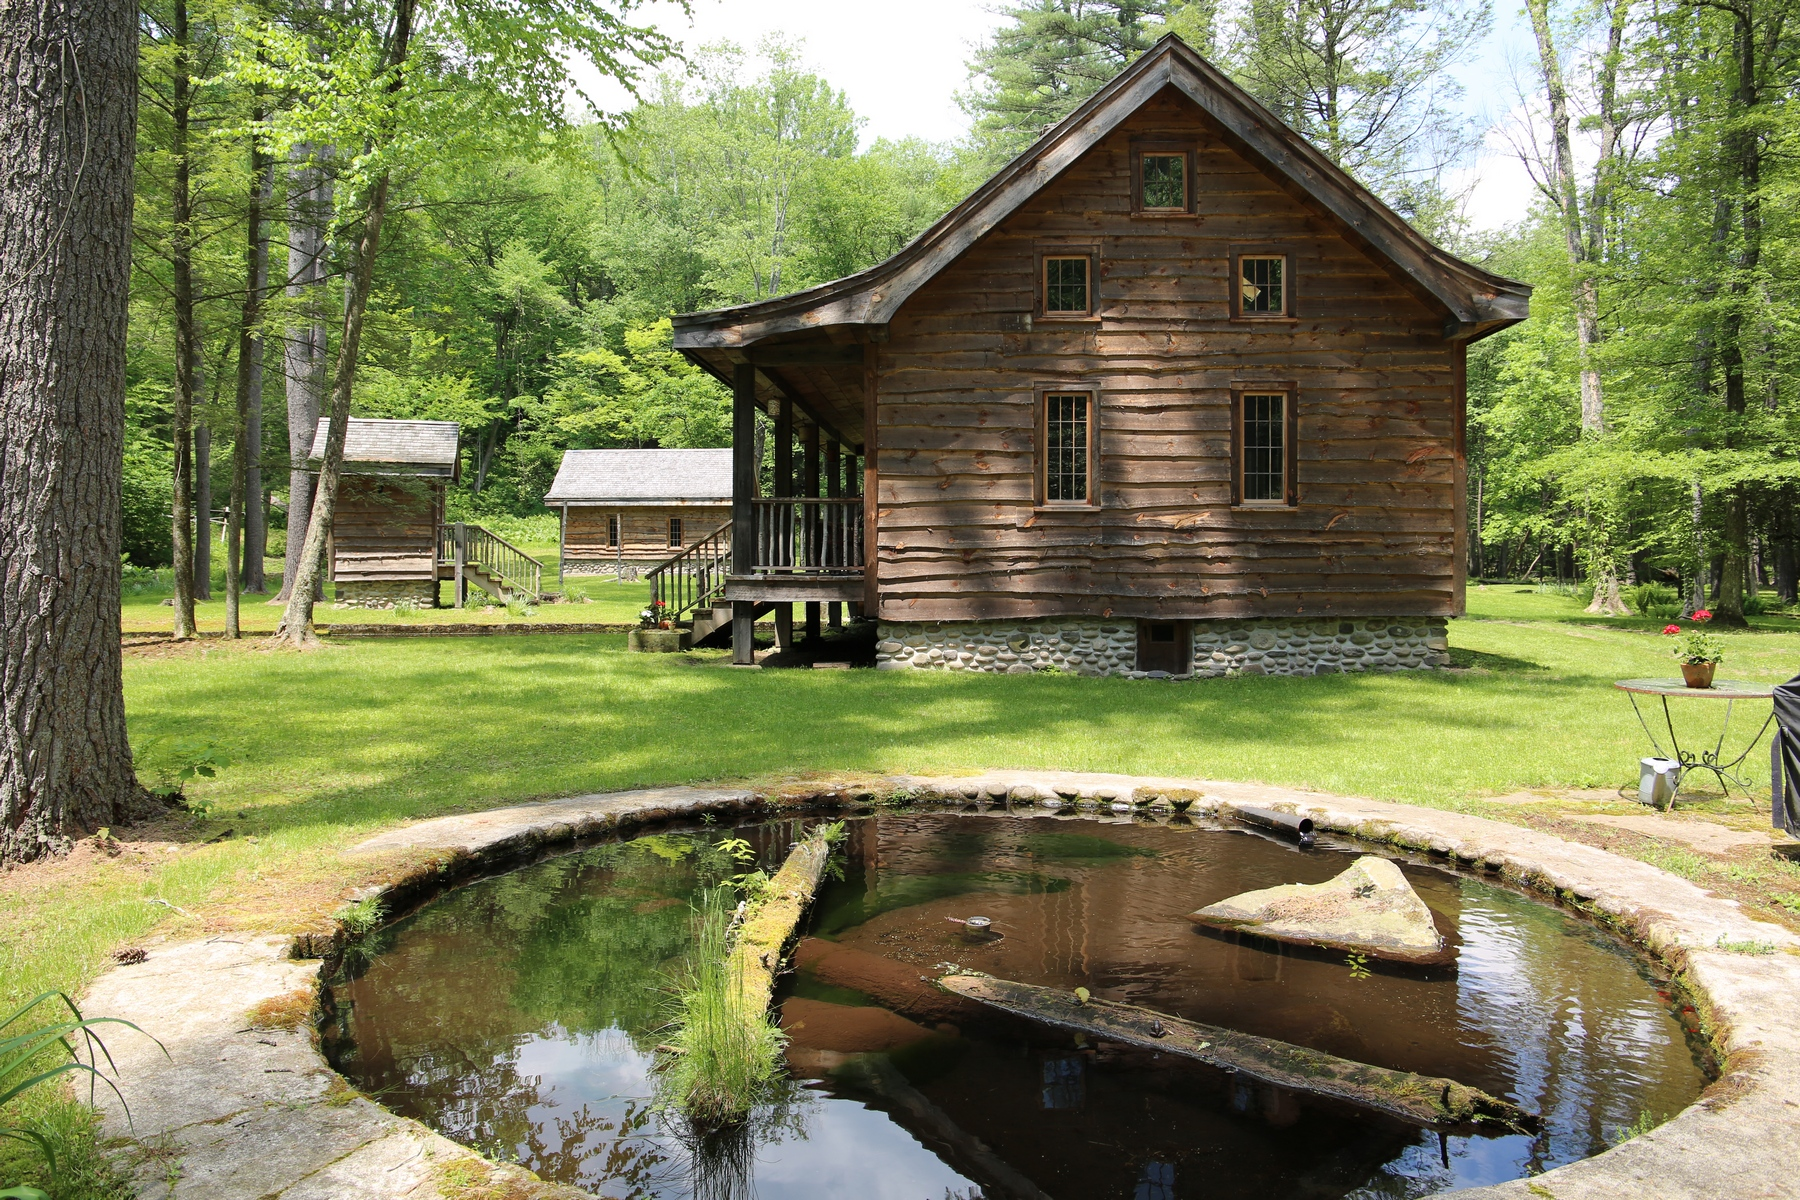 Single Family Homes for Active at Trout Hatchery Ponds on the Vernooy Kill Catskills 414 Upper Jenny Brook Road Napanoch, New York 12489 United States